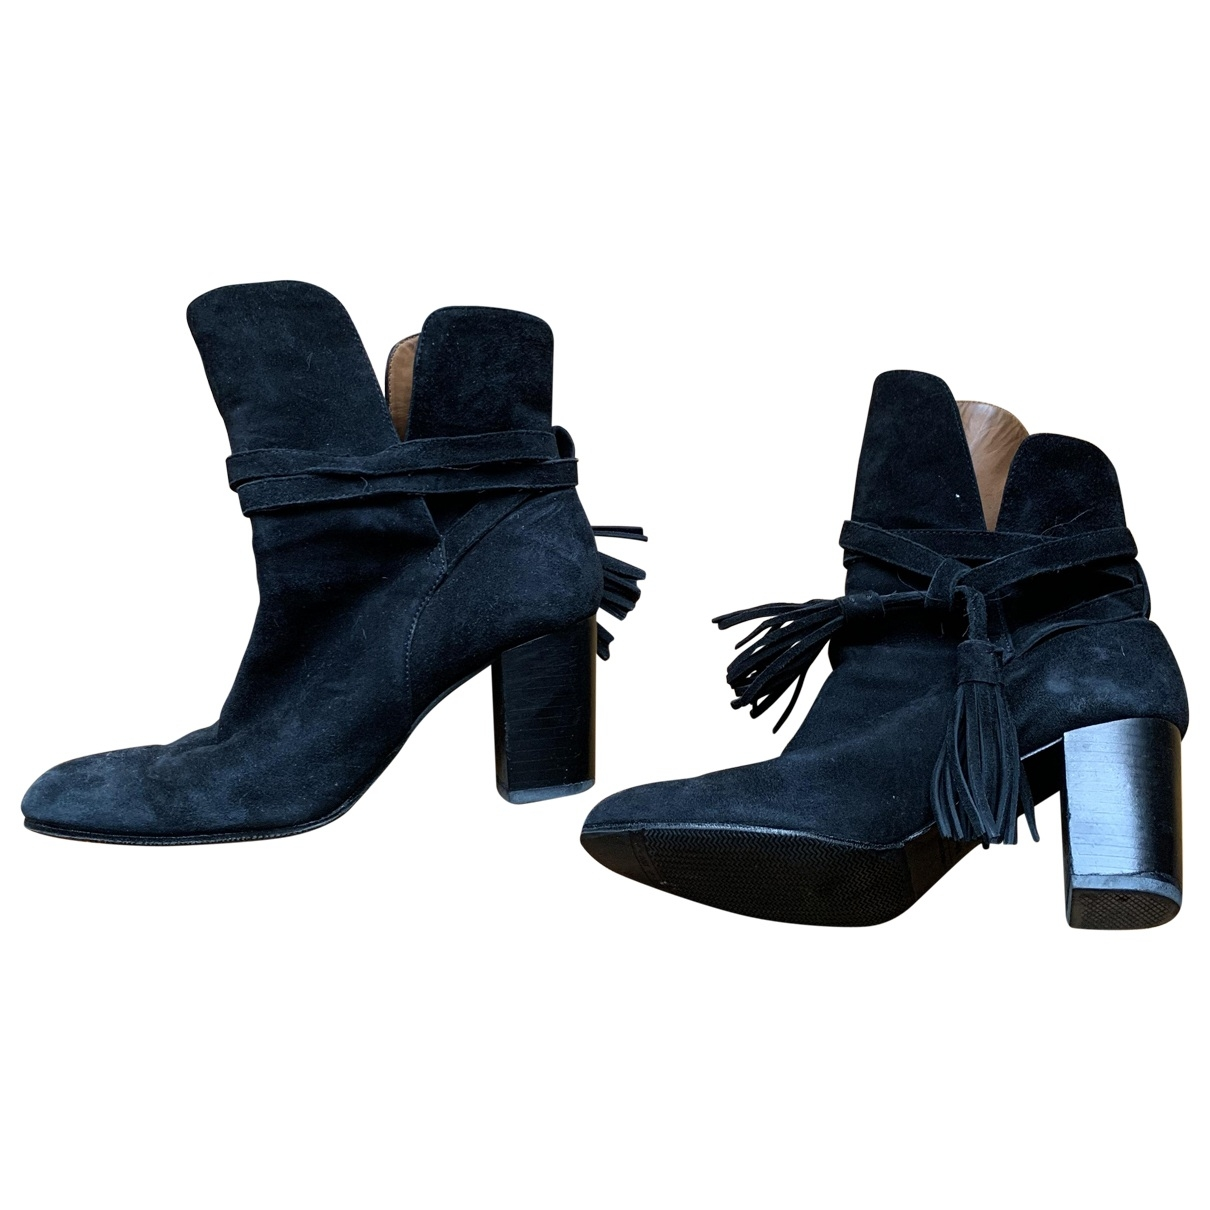 & Stories \N Black Leather Ankle boots for Women 37 EU